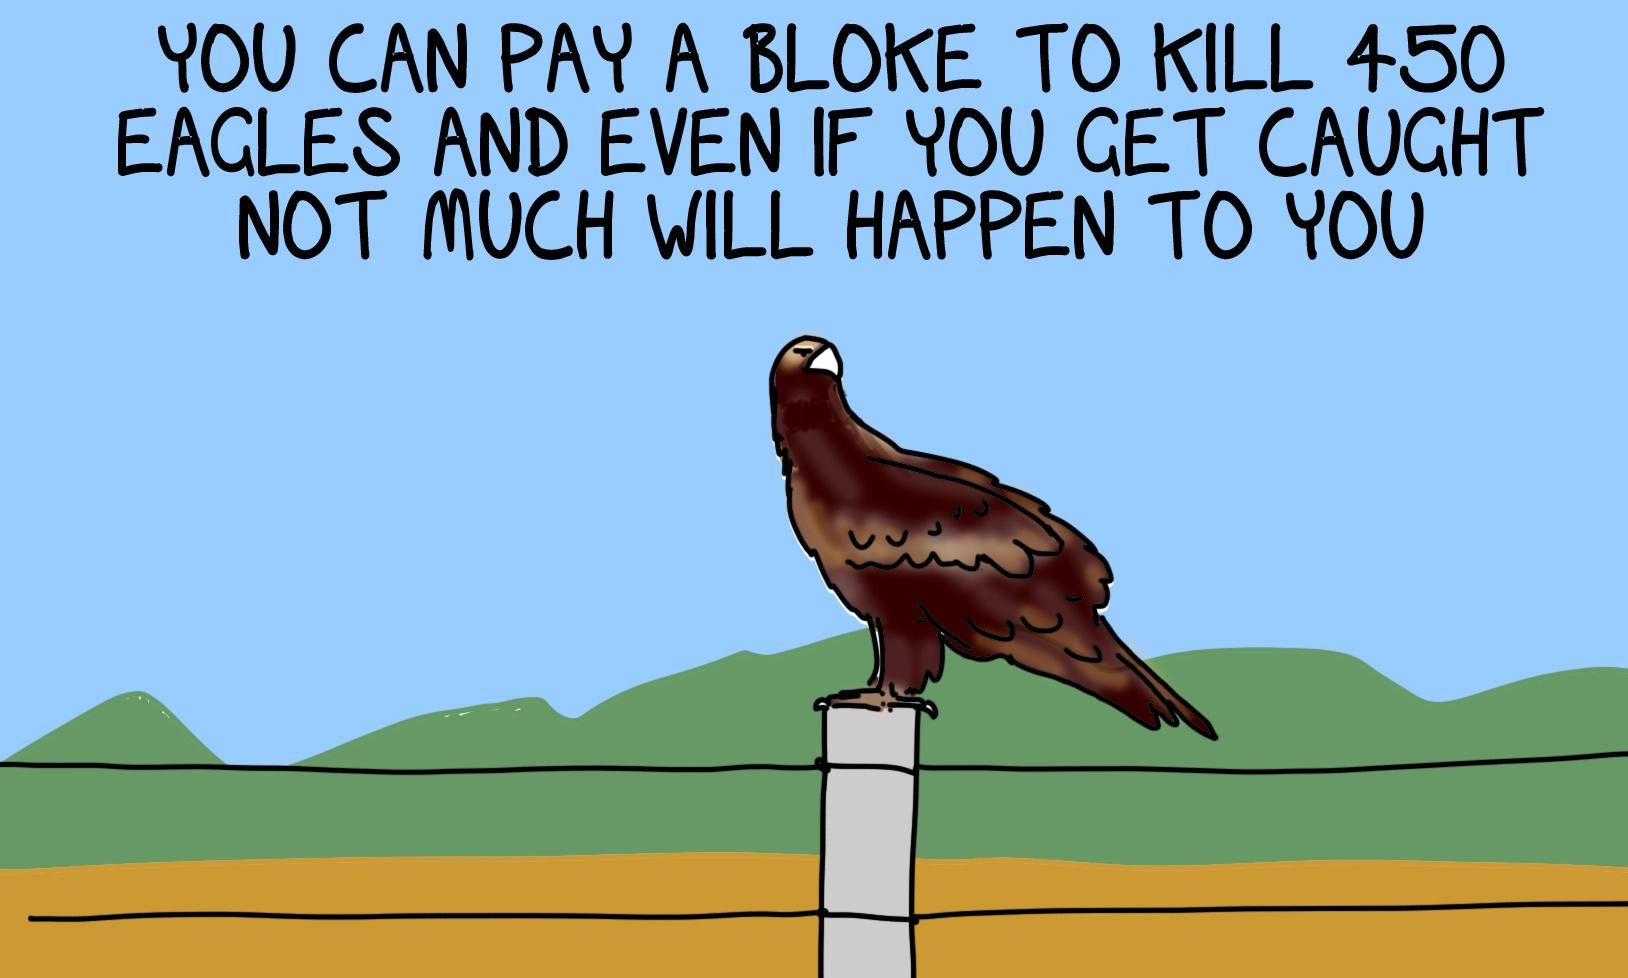 We get it, farming is hard, but if you can't make a go of it without killing 420 wedge-tailed eagles ...